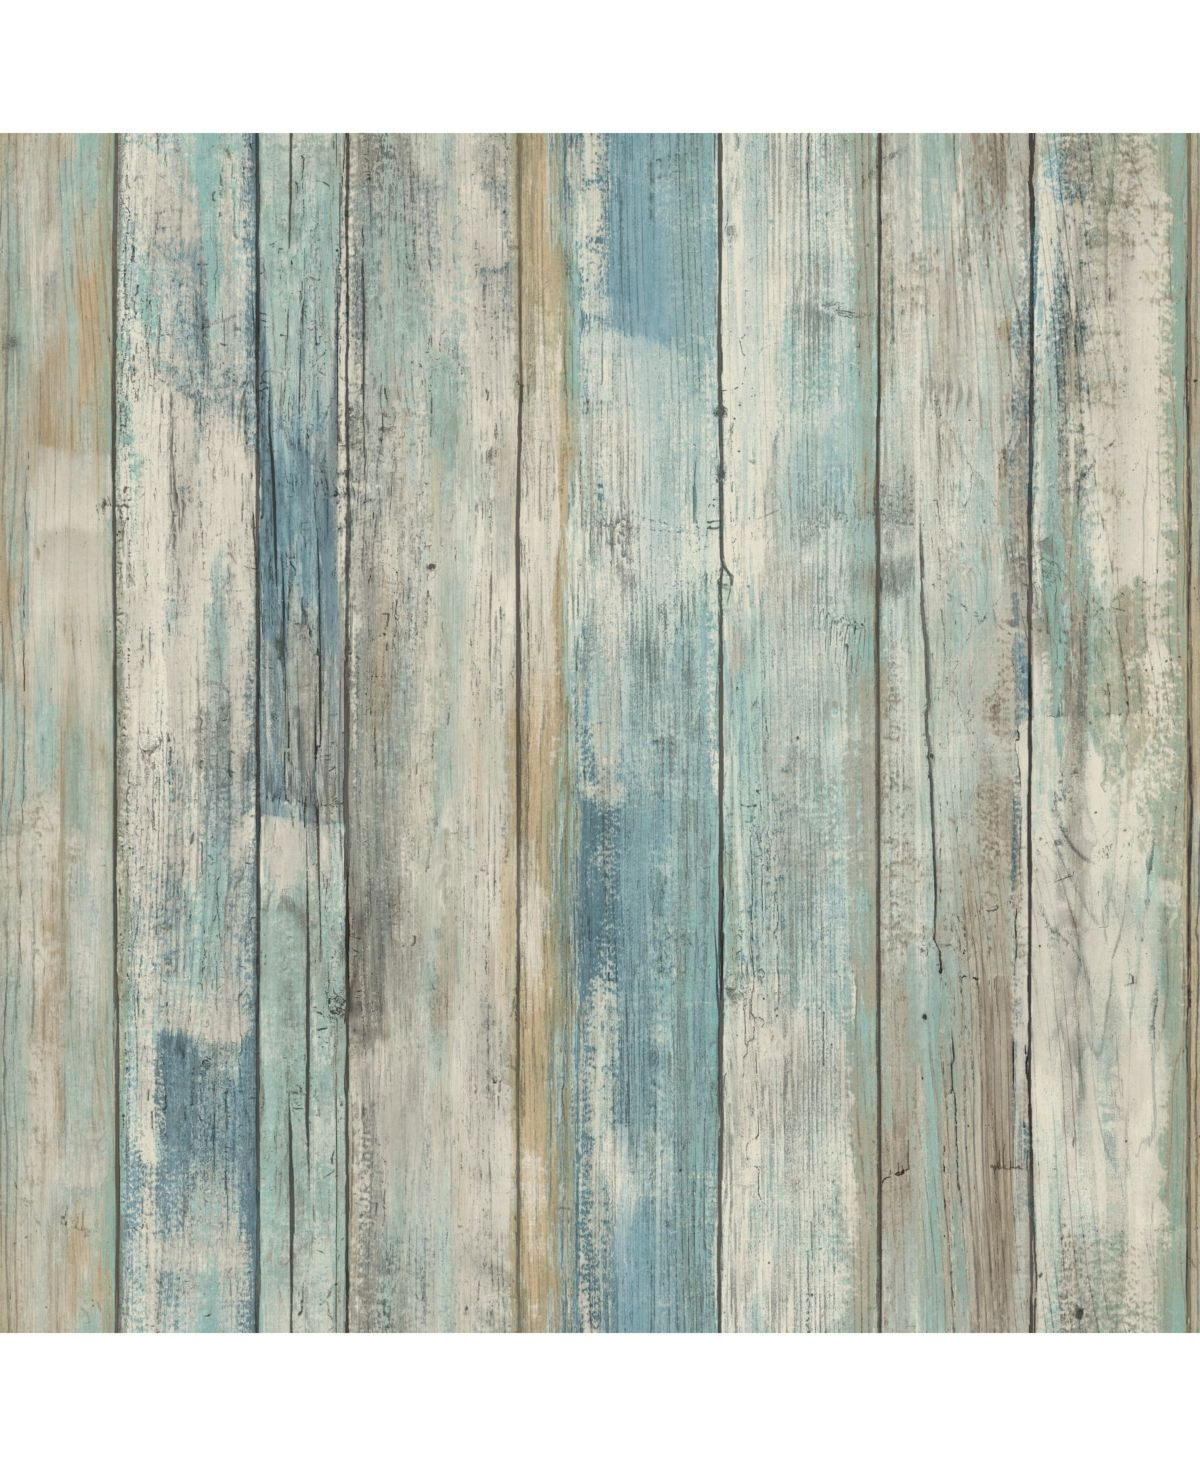 York Wallcoverings Blue Distressed Wood Peel And Stick Wallpaper Reviews All Wall Decor Home Decor Macy S In 2021 Painting Wood Paneling Wood Paneling How To Distress Wood